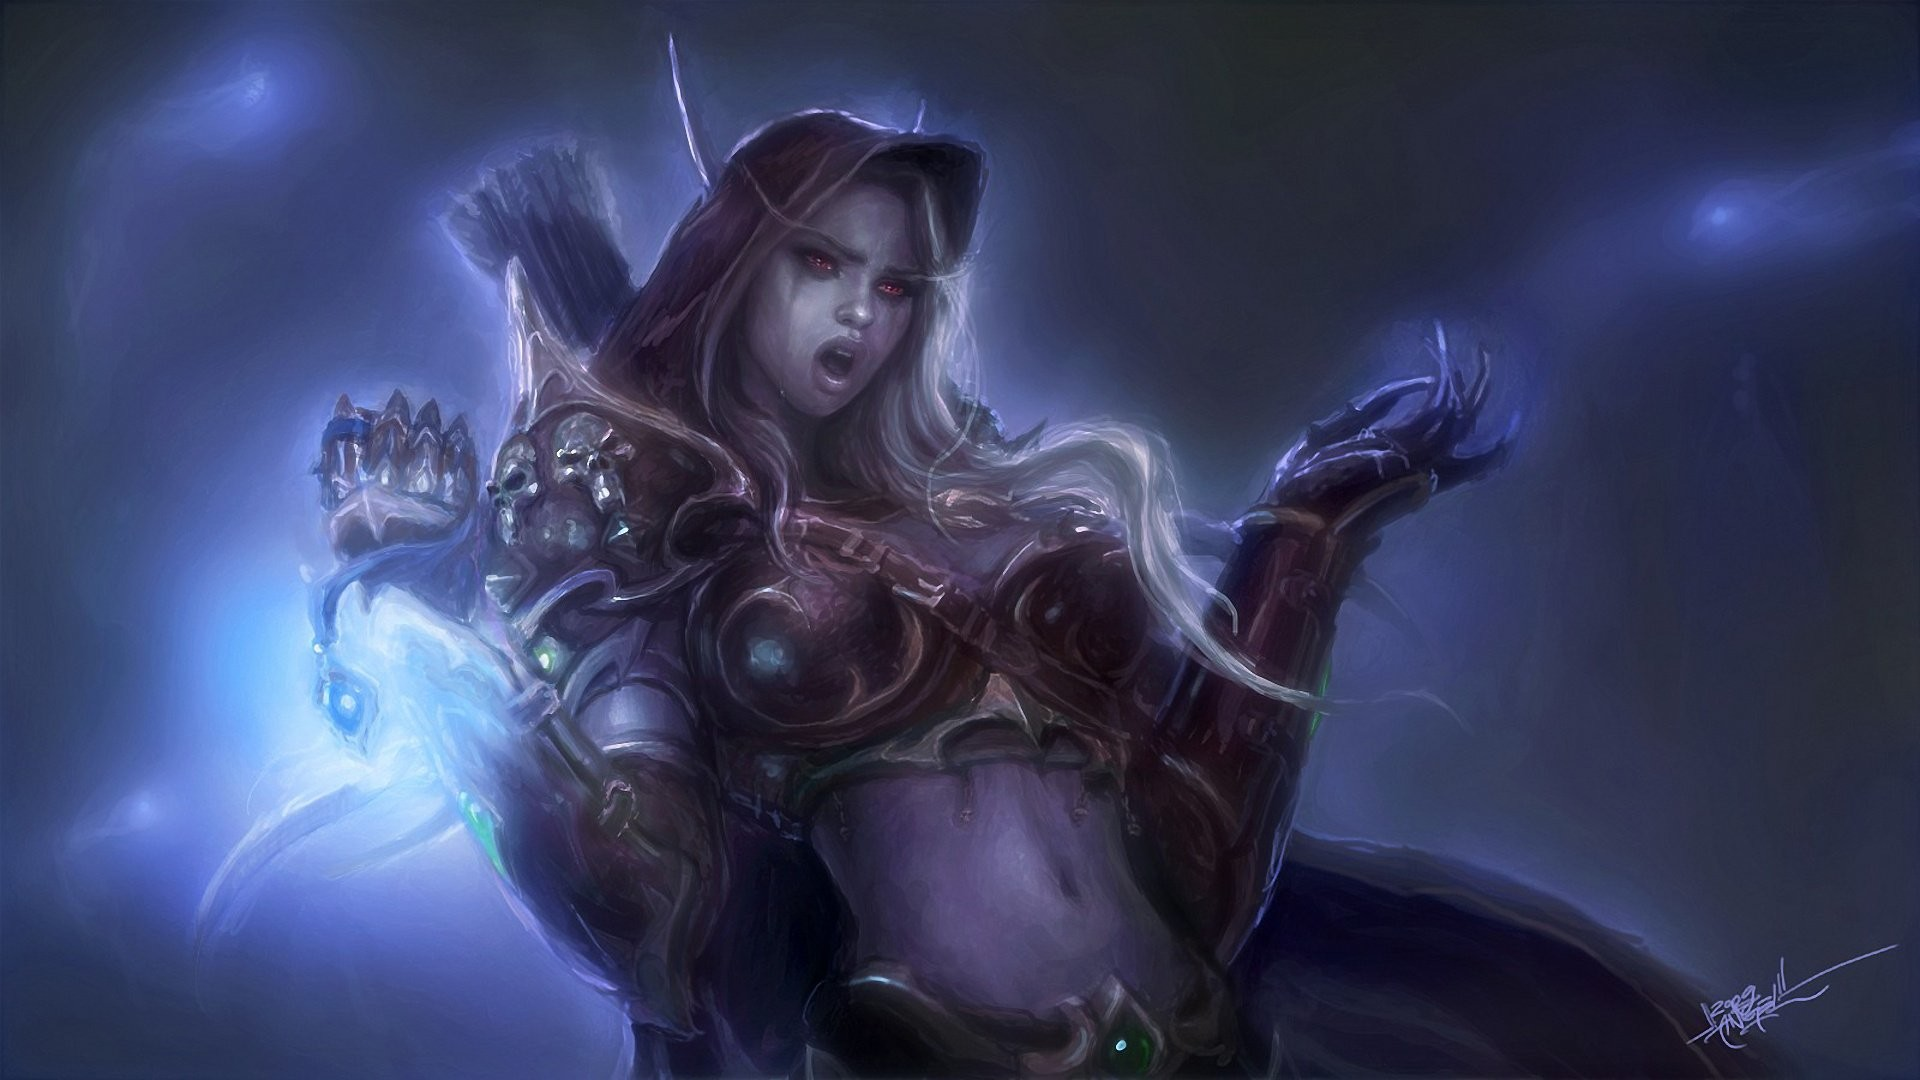 Res: 1920x1080, Arts lady sylvanas windrunner world of warcraft wow armor magic elf  wallpaper |  | 747990 | WallpaperUP